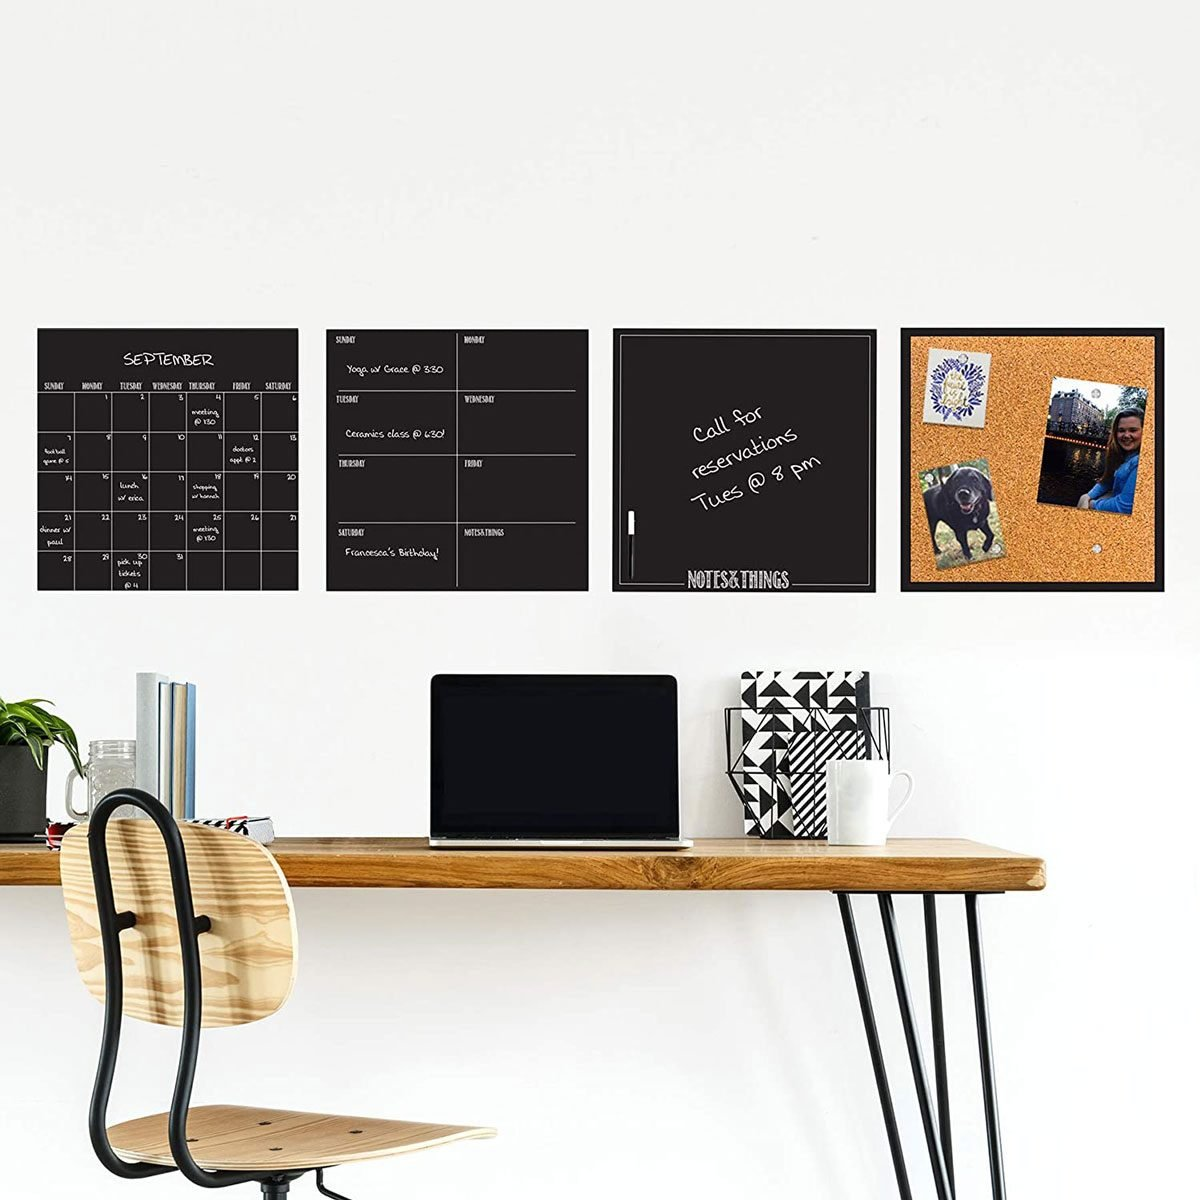 How to Make Your Home Office Work